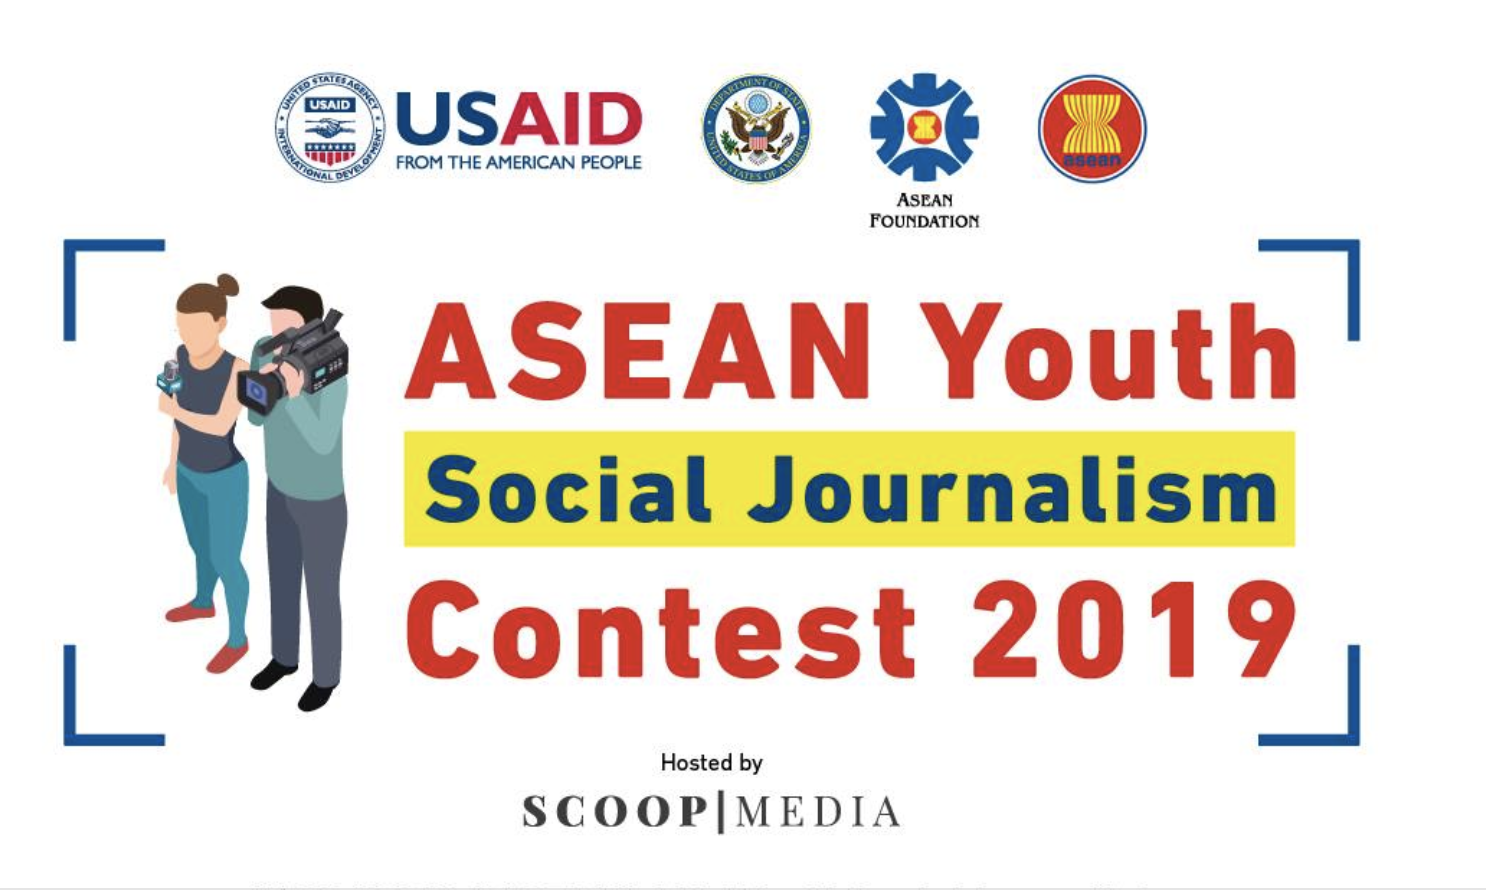 ASEAN Youth Social Journalism Contest 2019 (Fully-funded to the workshop in Brunei Darussalam)